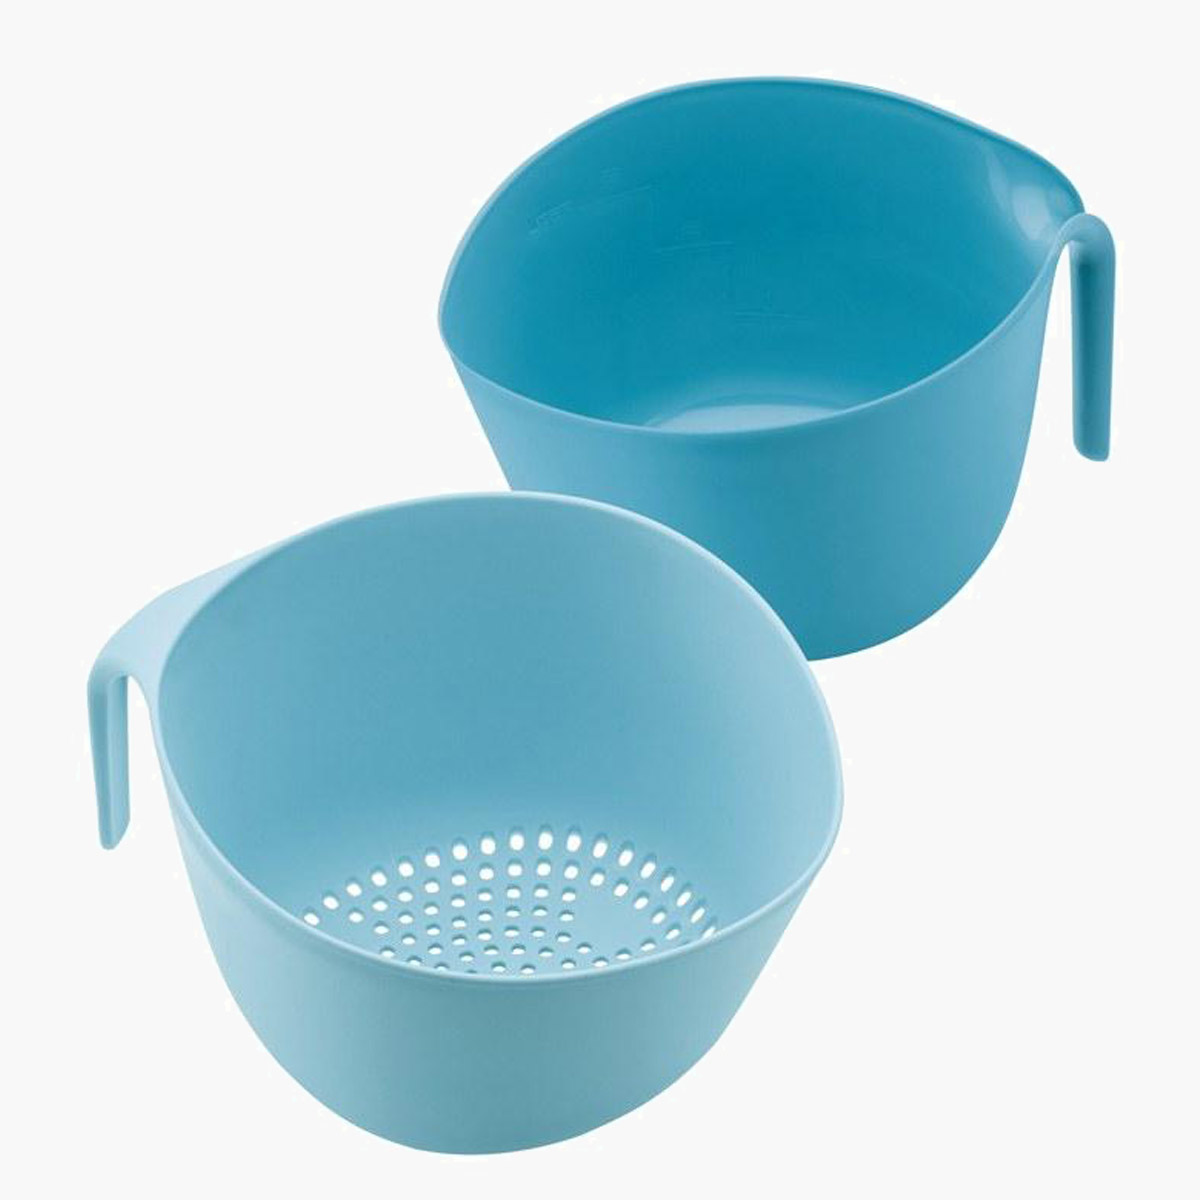 A blue bowl and colander as part of the Ayesha Curry bowl set.